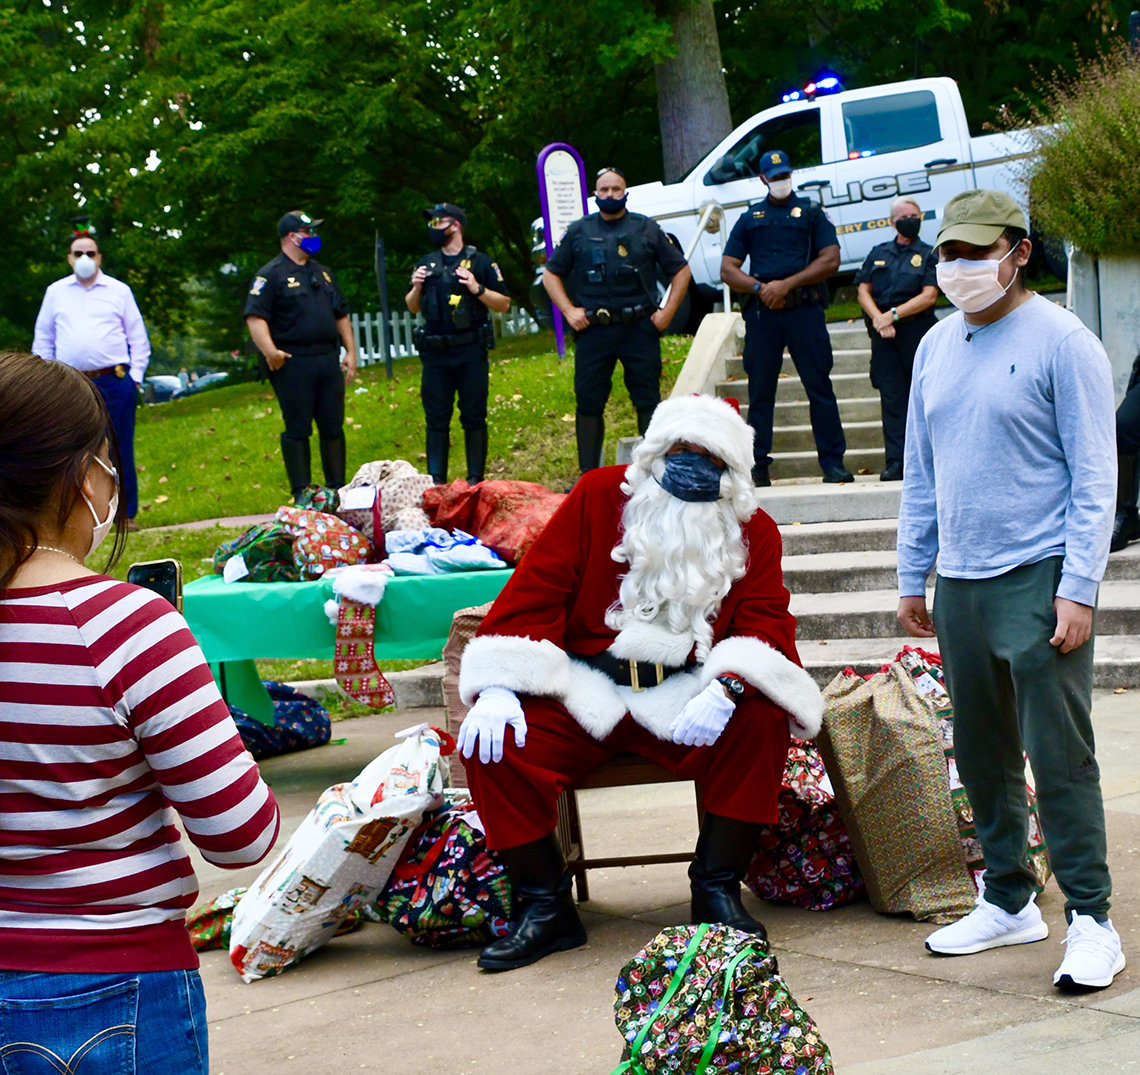 A woman takes a photo with her iphone of a young man wearing a blue longsleeve shirt and Santa.